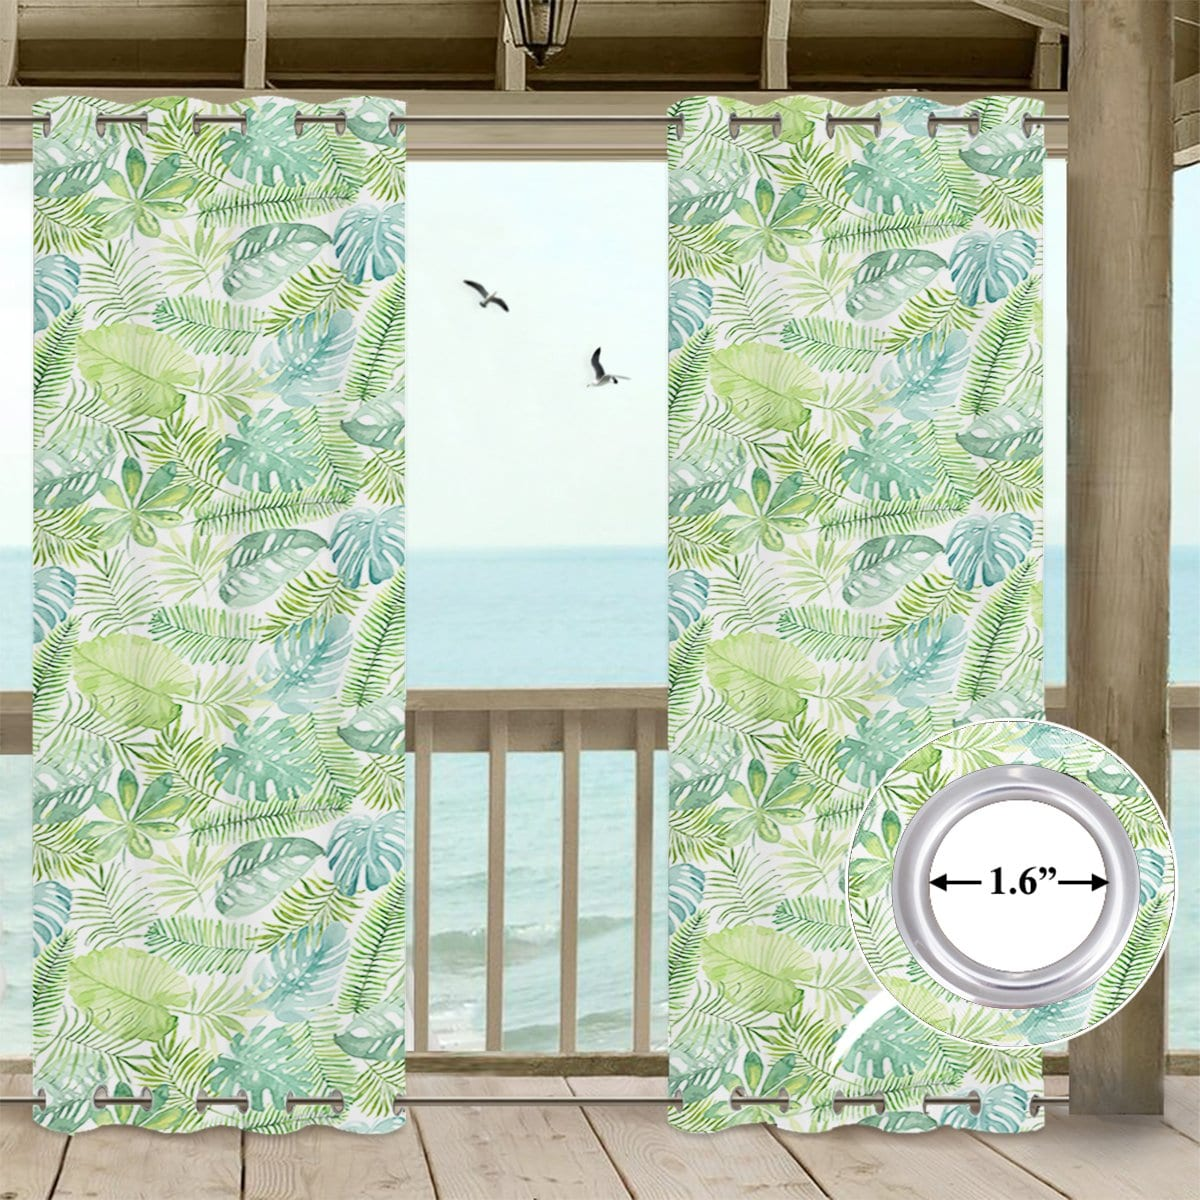 Top 3 best-selling Snow City Shop curtains